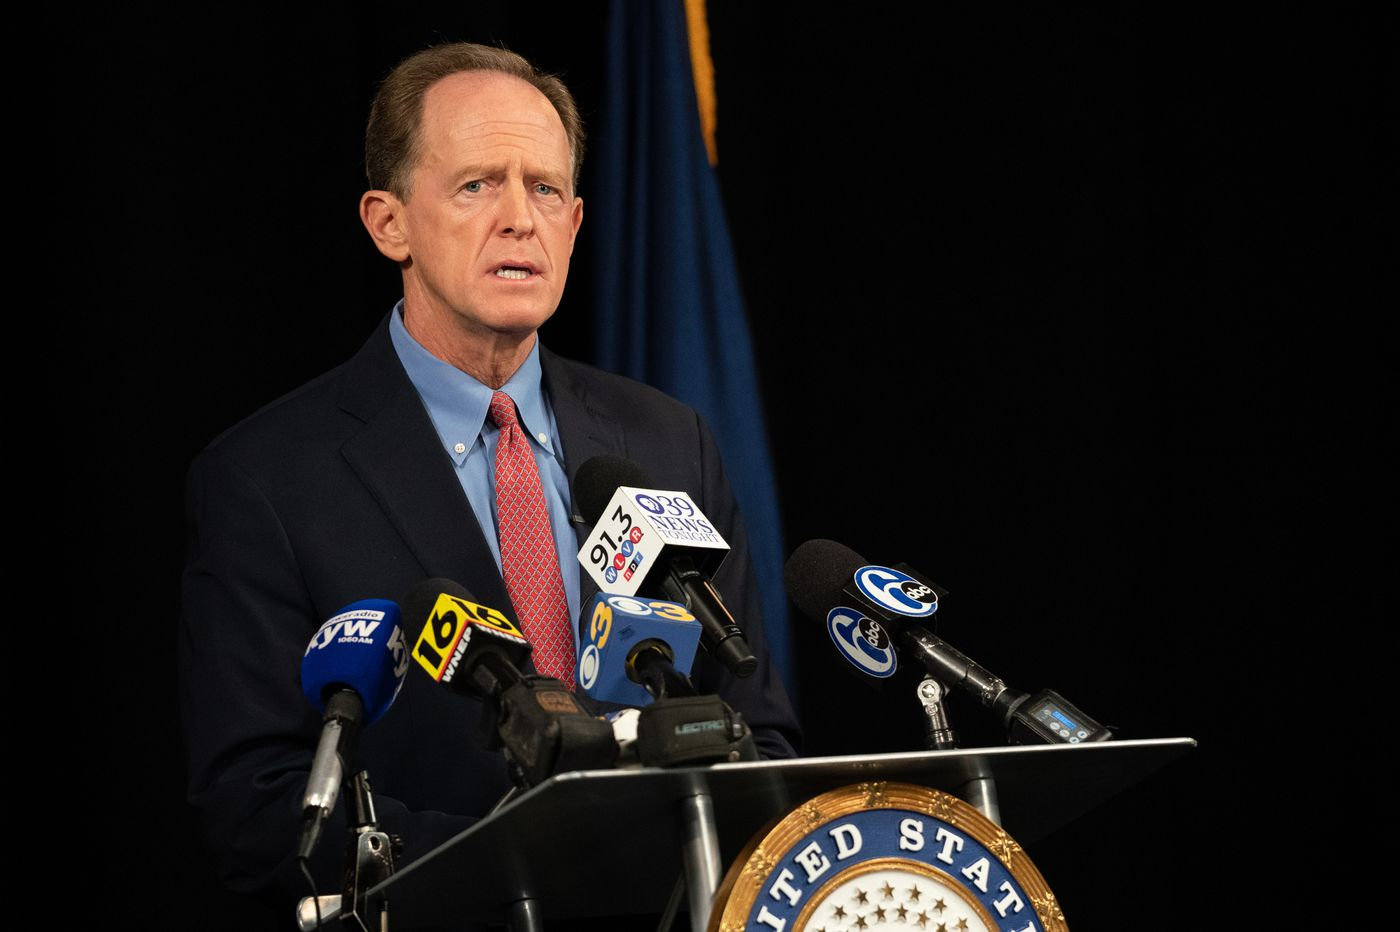 Pat Toomey just made the 2022 elections in Pennsylvania a total free-for-all